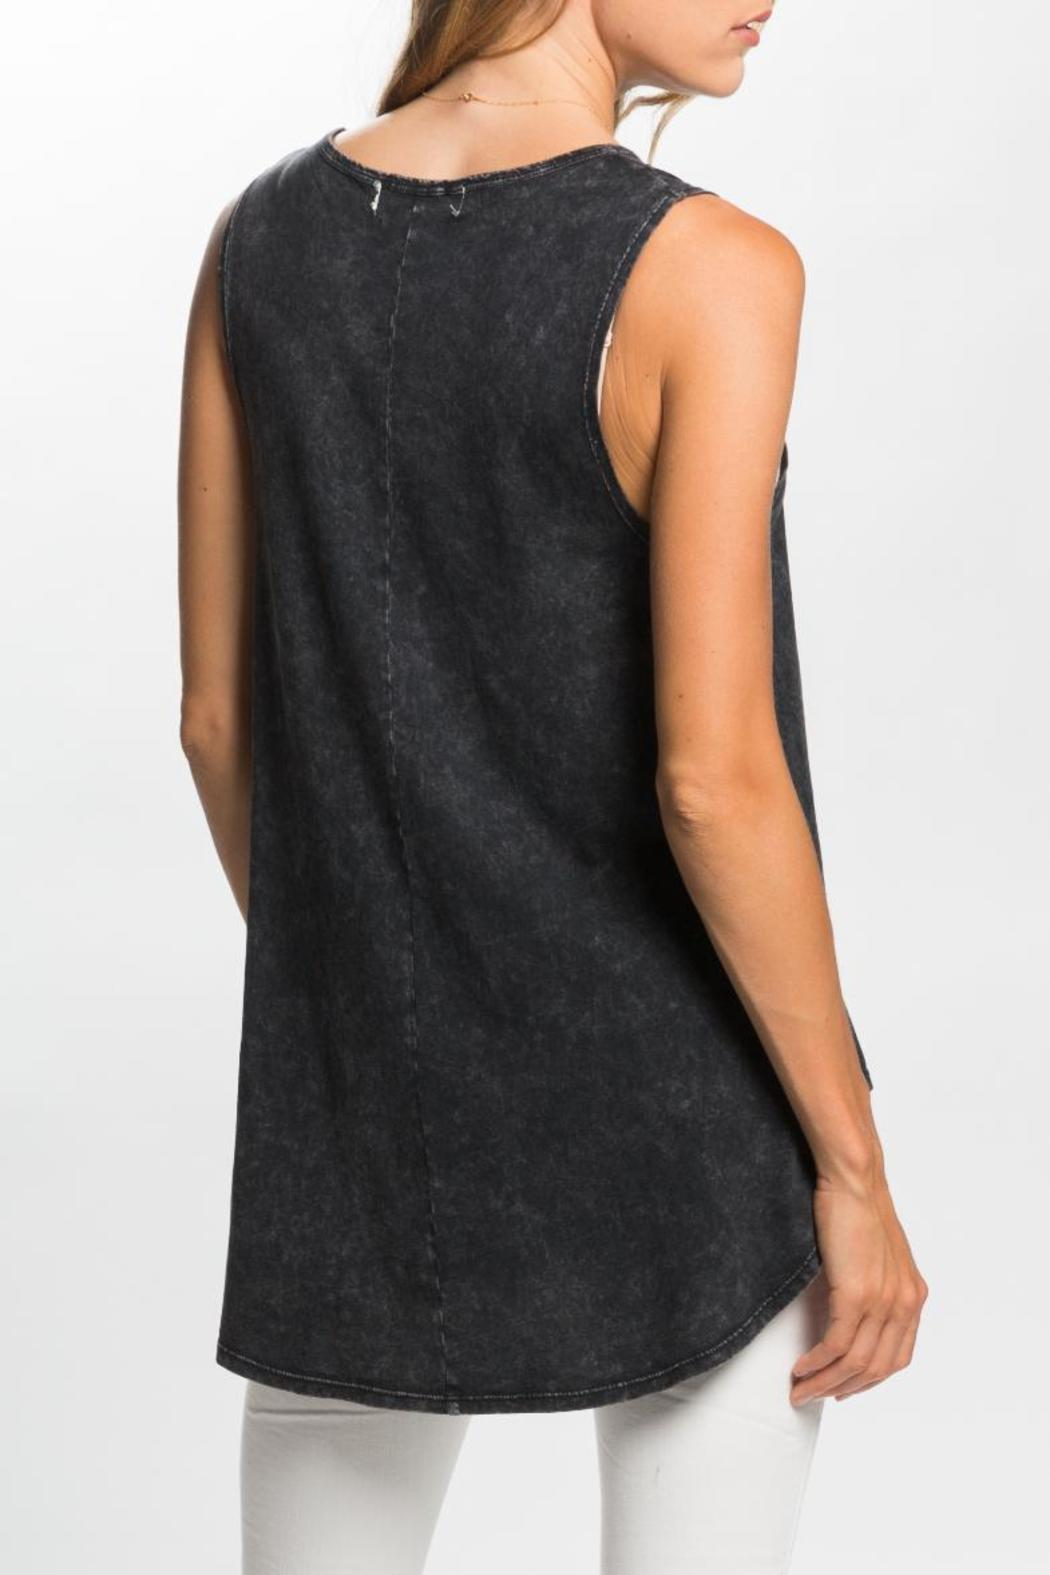 PPLA Graphic Tunic Top - Front Full Image